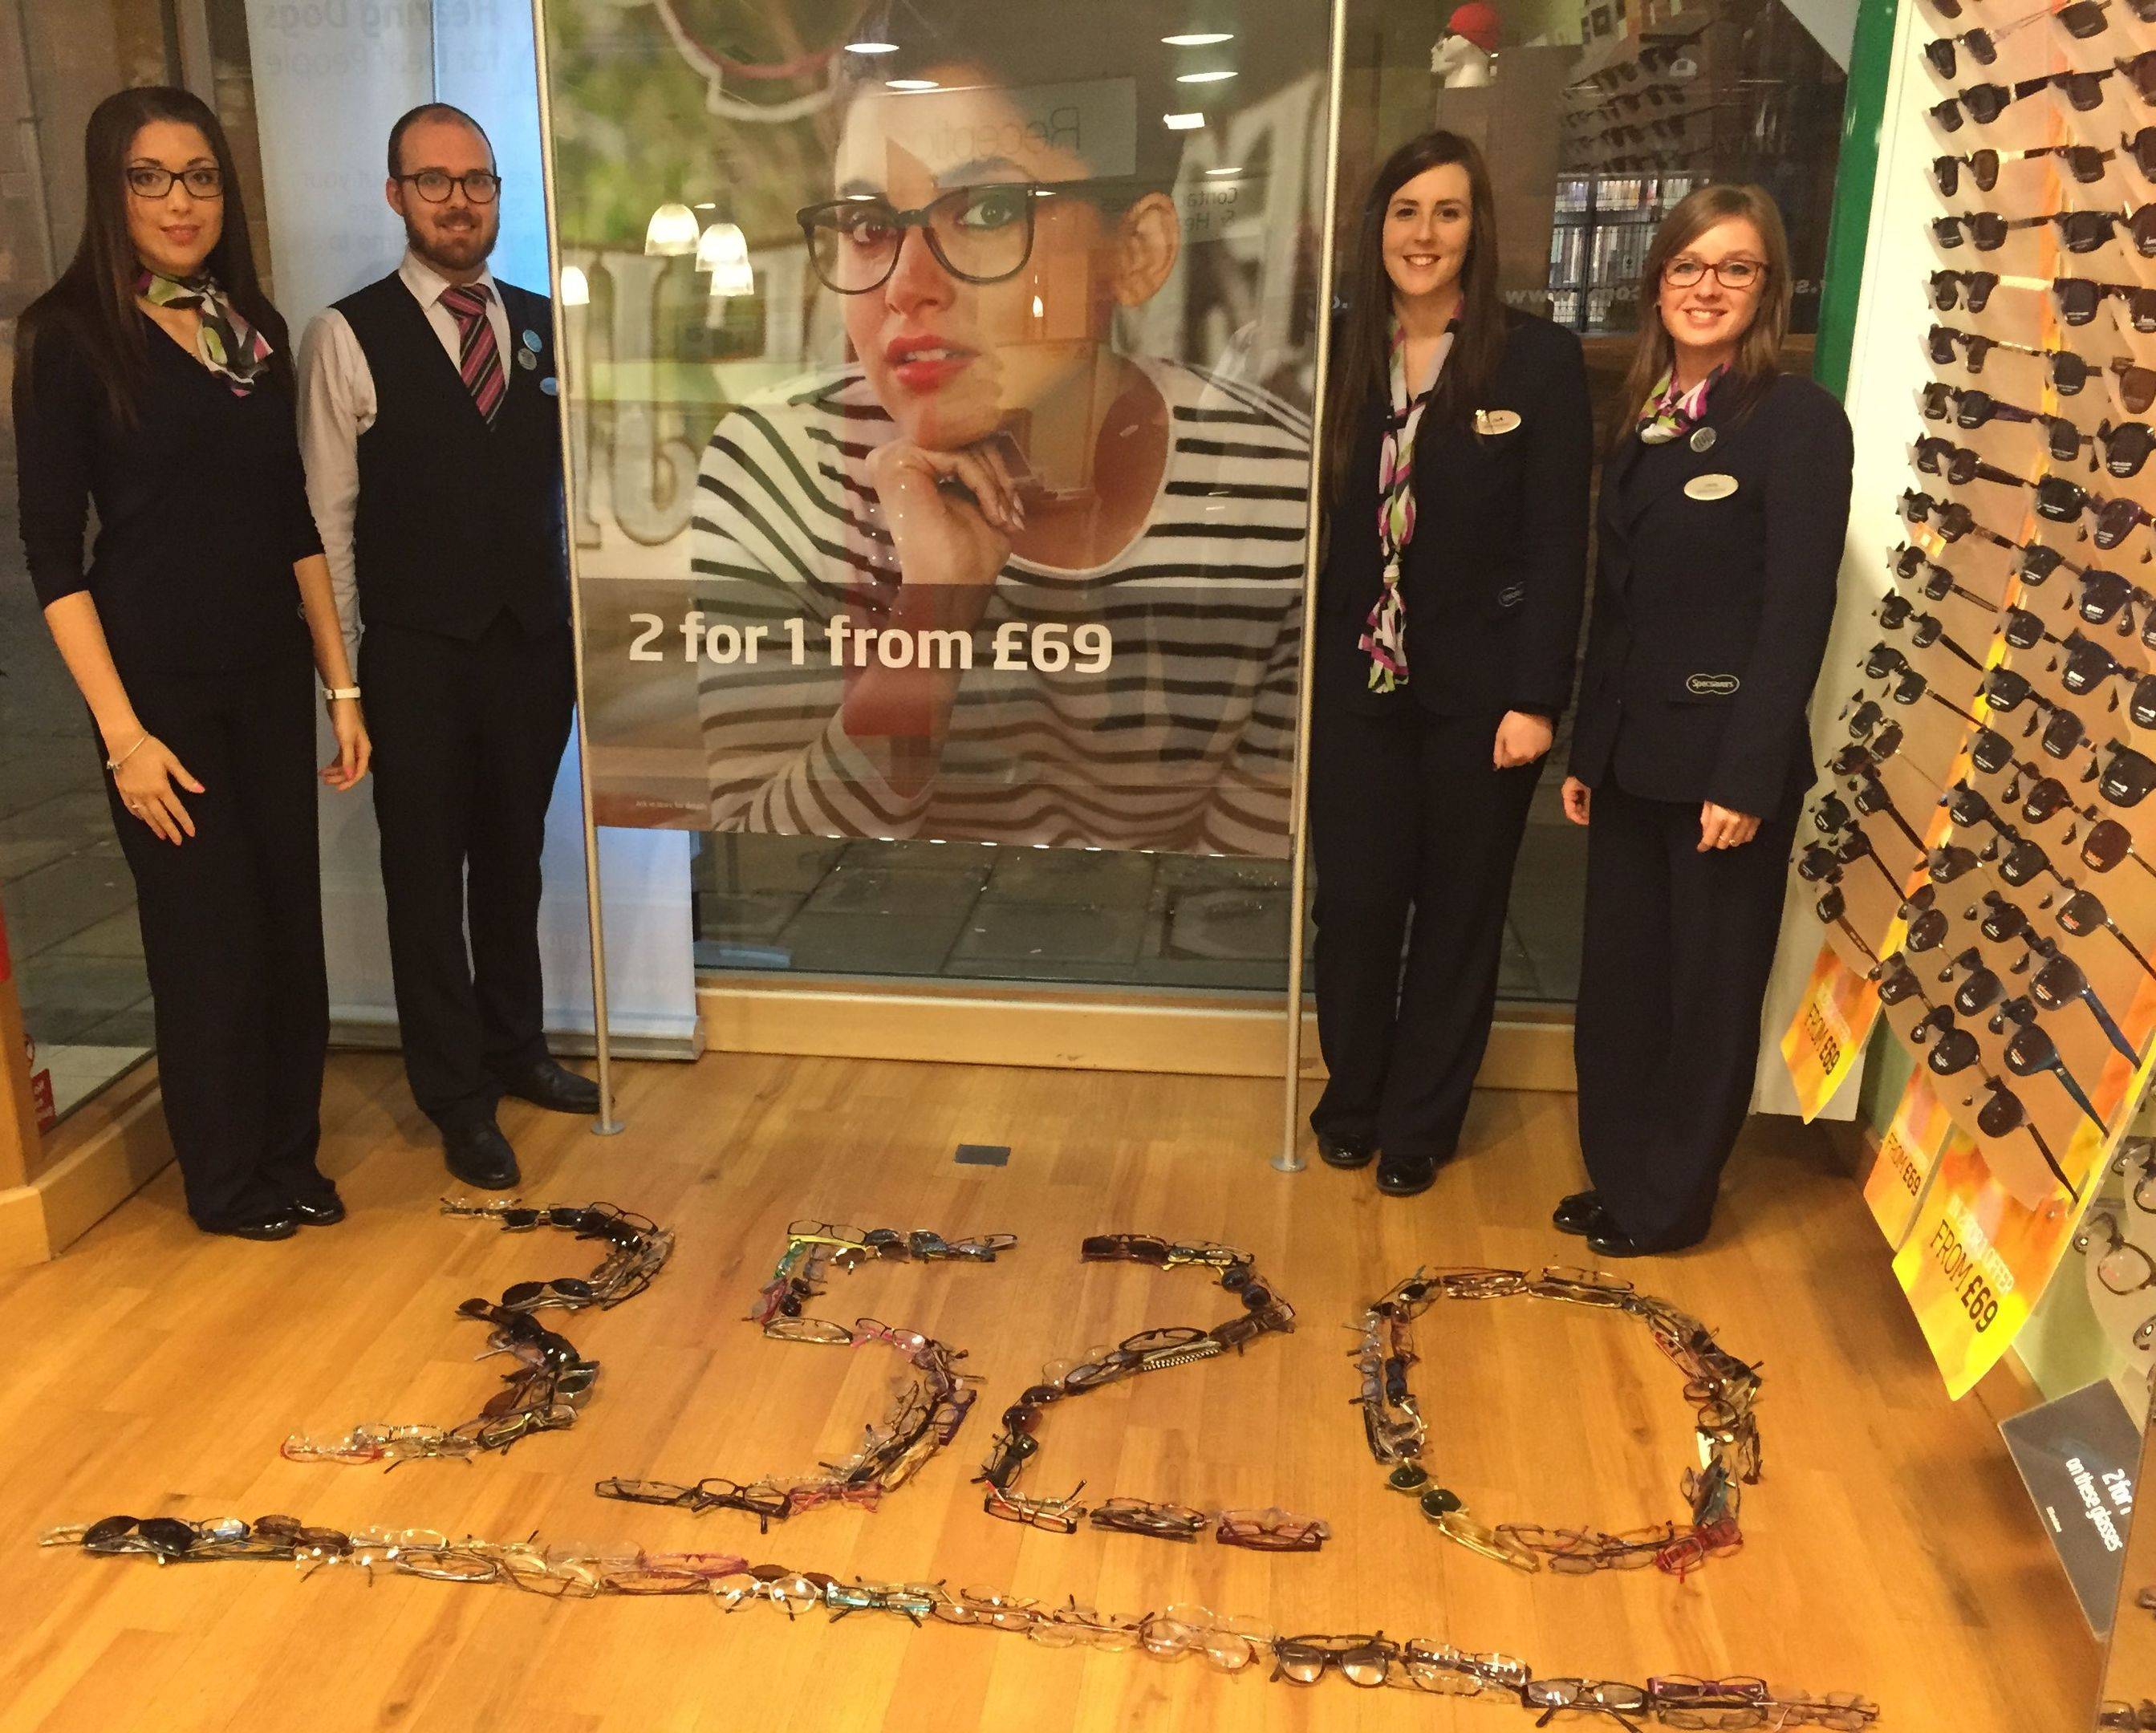 Last year's specs appeal garnered 3,520 pairs of glasses.